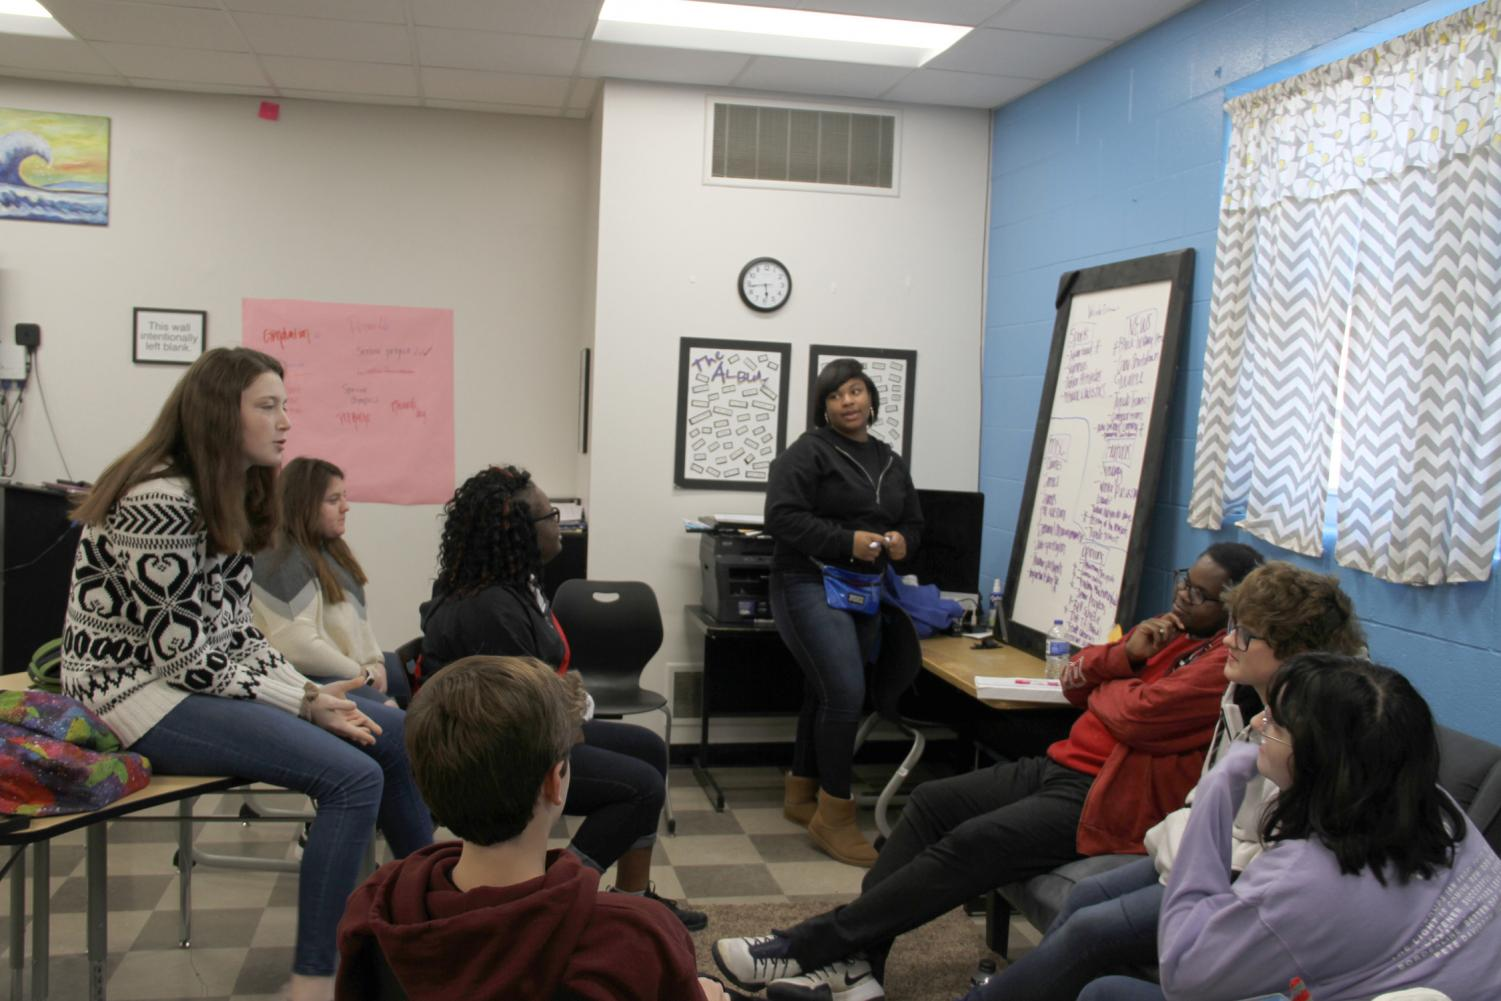 Miyaa White leads the rest of the Multi-Media Reporting class discussion in a Maestro session planning out the Winter Issue of the Hi-Times. The staff is trying to brainstorm interesting stories that are relevant and relatable to most THS Students.